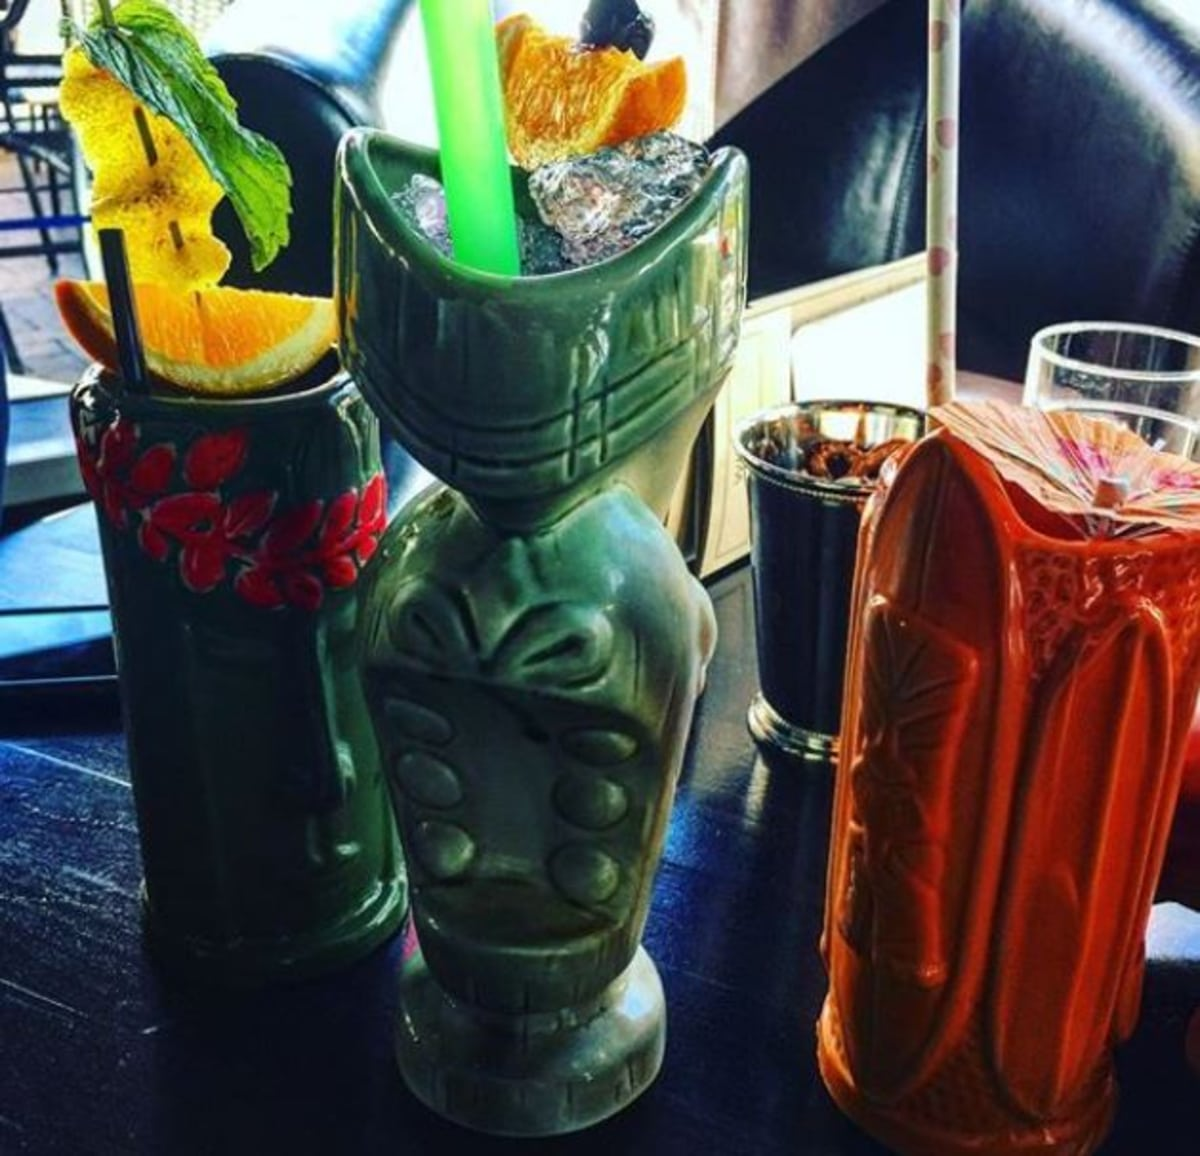 Pick any Tiki glass as long as it is a tall one for the Mai Tai or the Rye Tai, a clever swap with rye for rum. Pic credit: Monsters and Critics